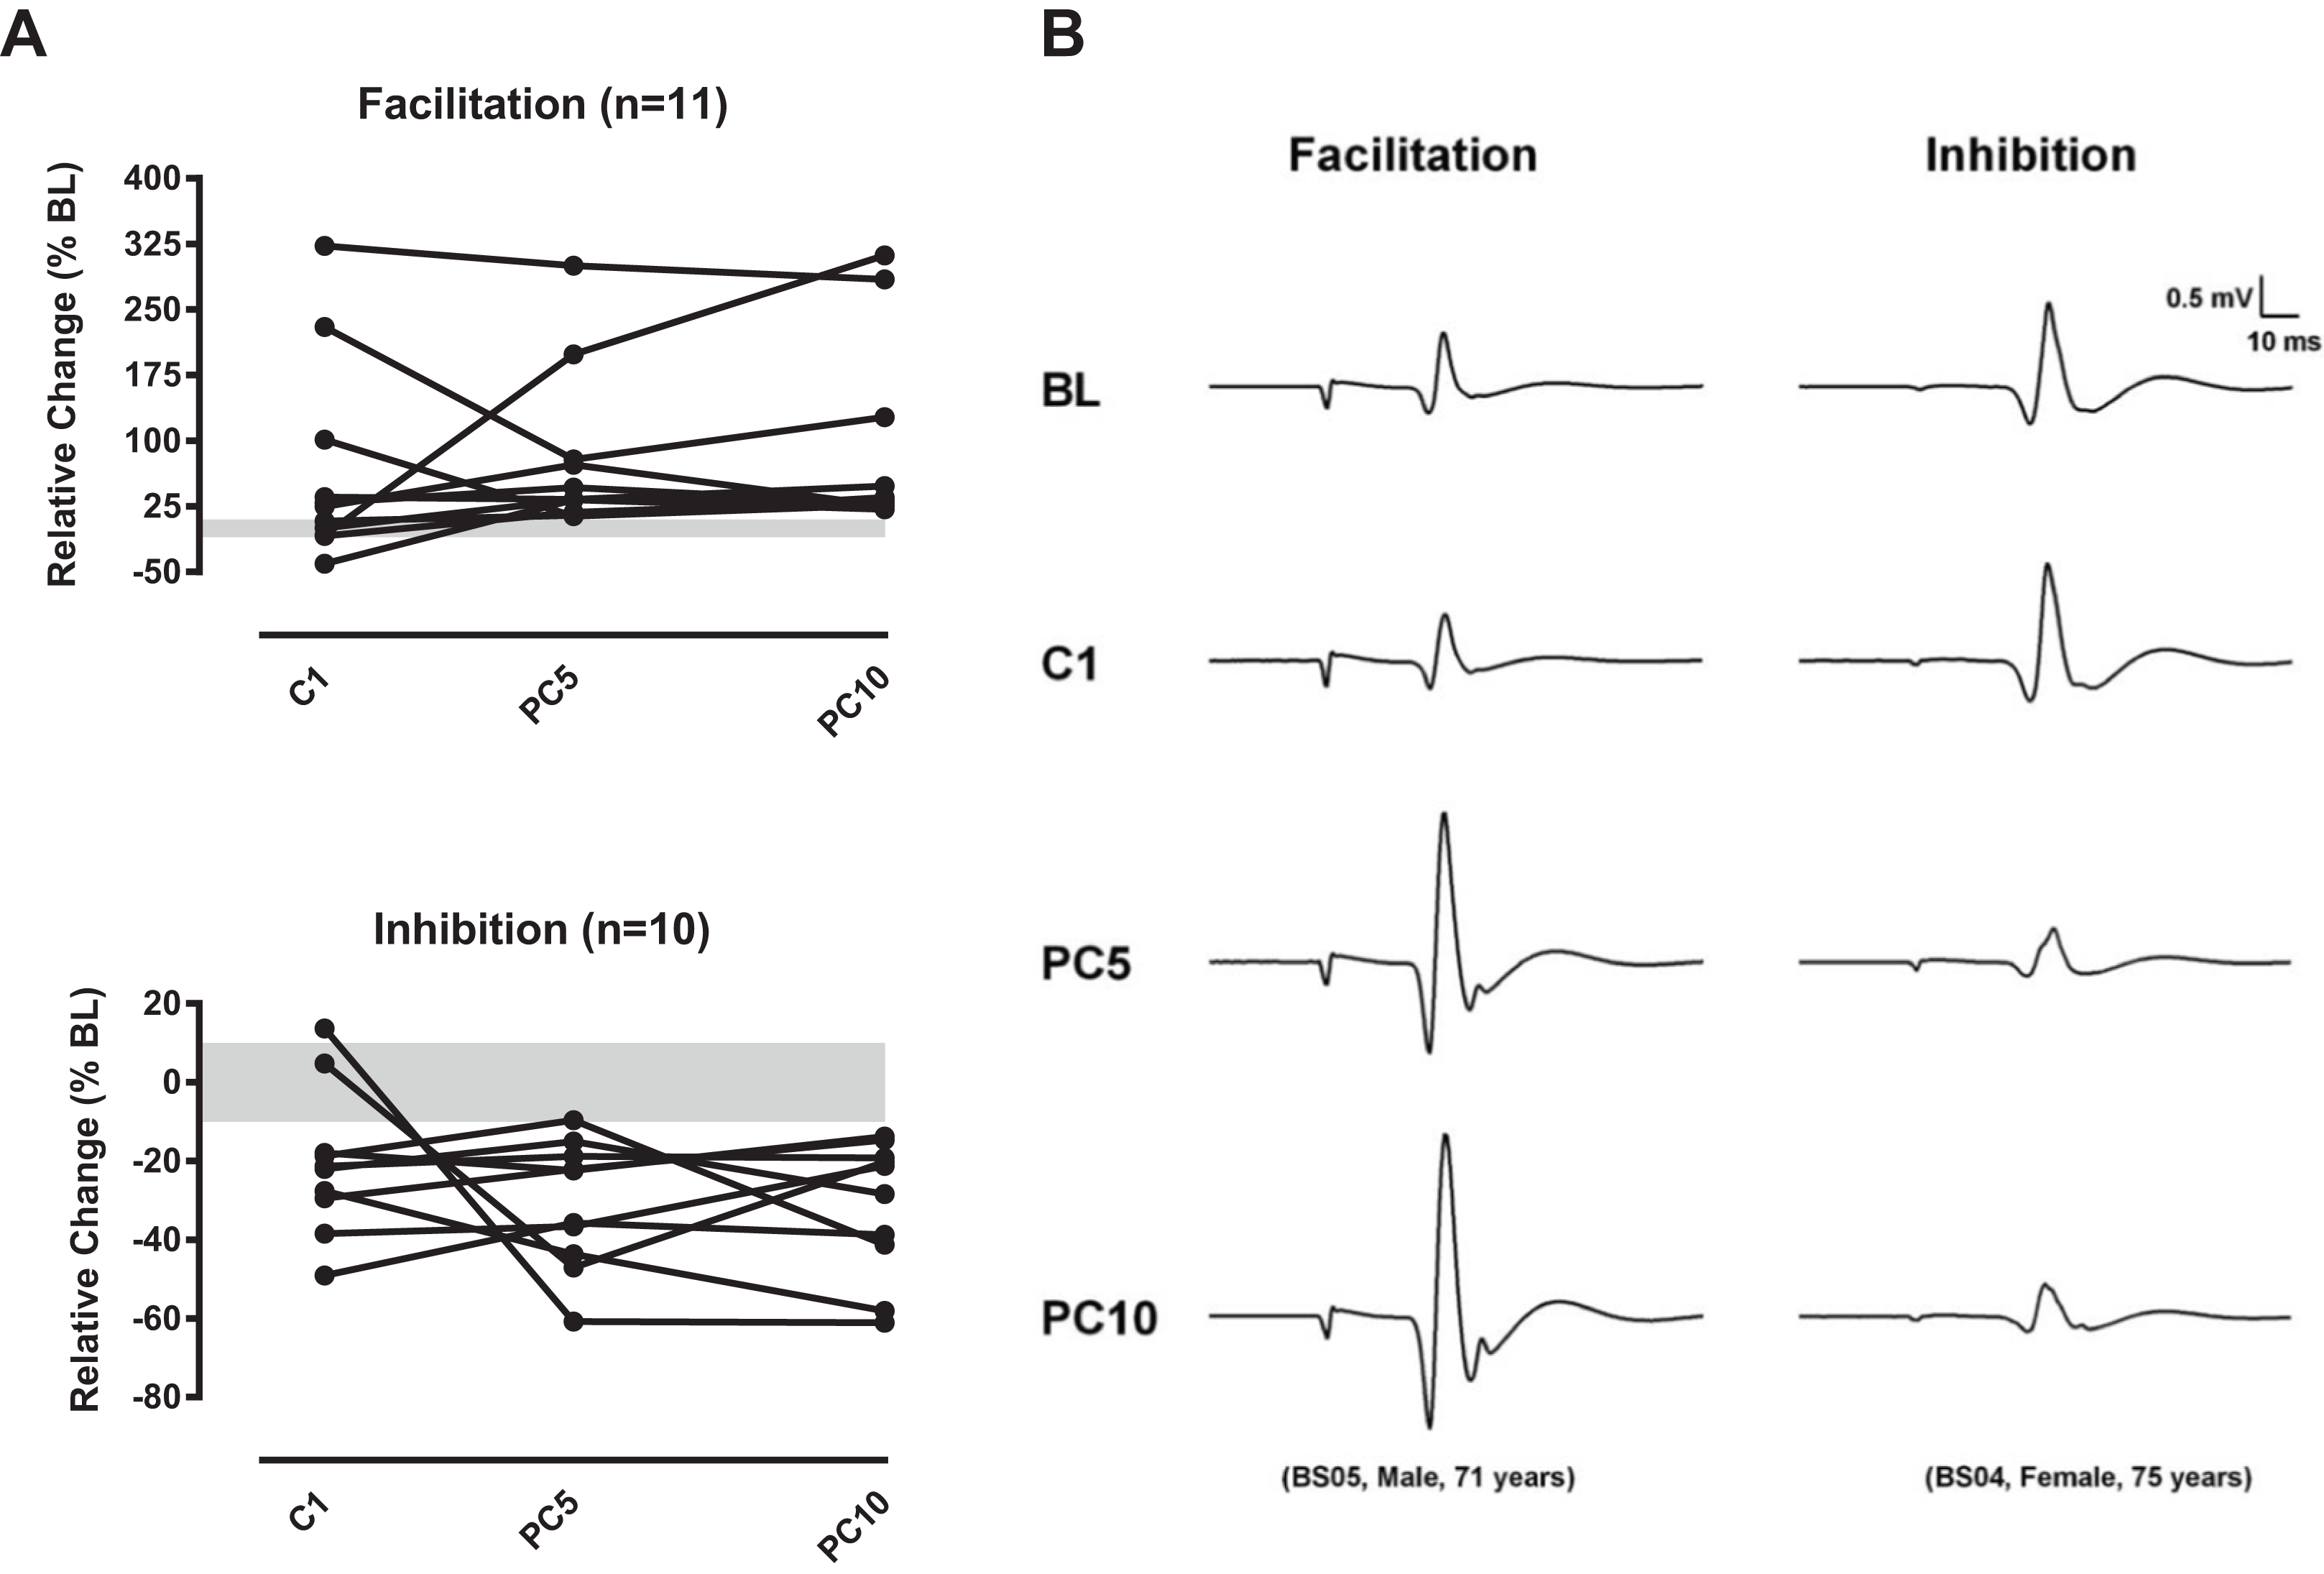 Modulation of corticomotor excitability in response to